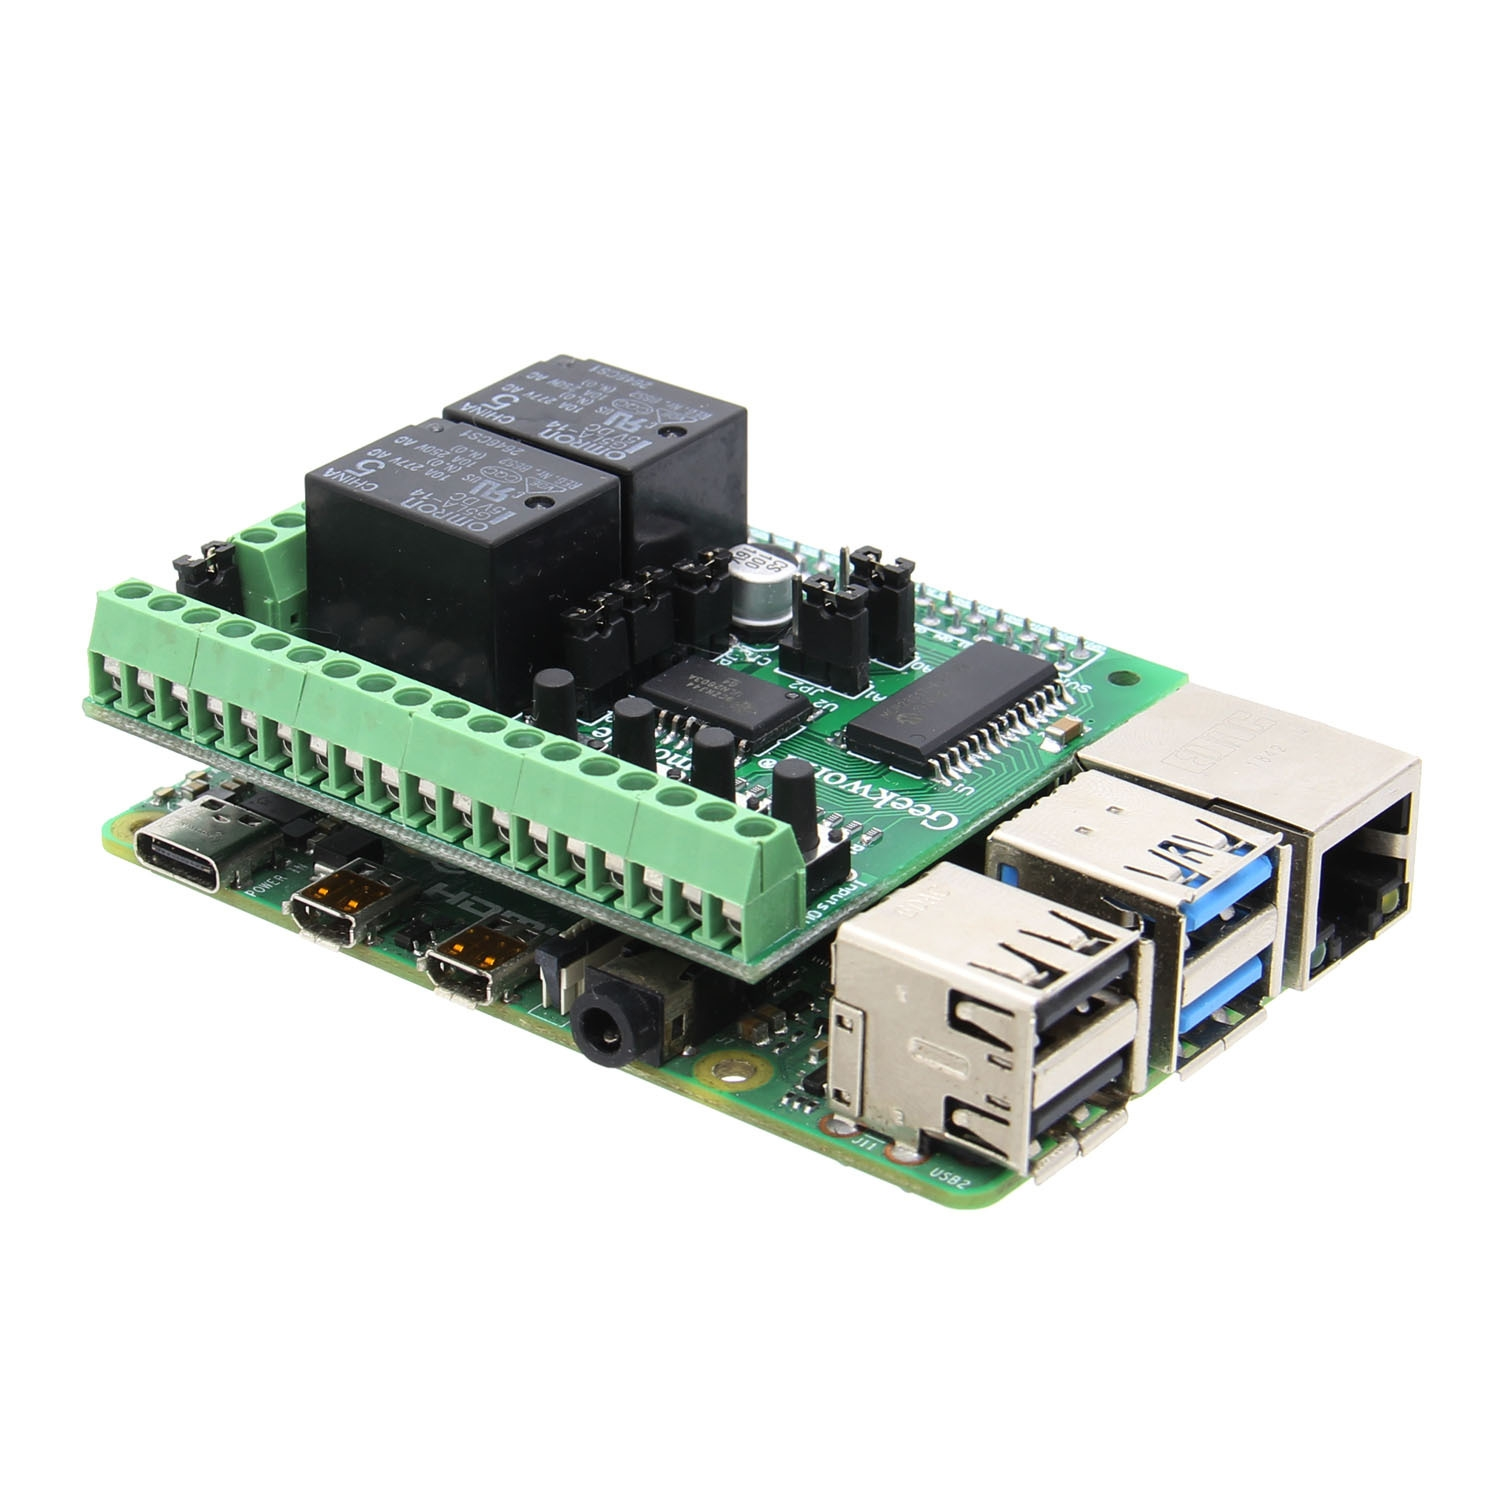 Expanding Plate Digital Input/Output DIDO HAT PiFace2 Digital Adapter Board for Raspberry Pi 4 / 3B+